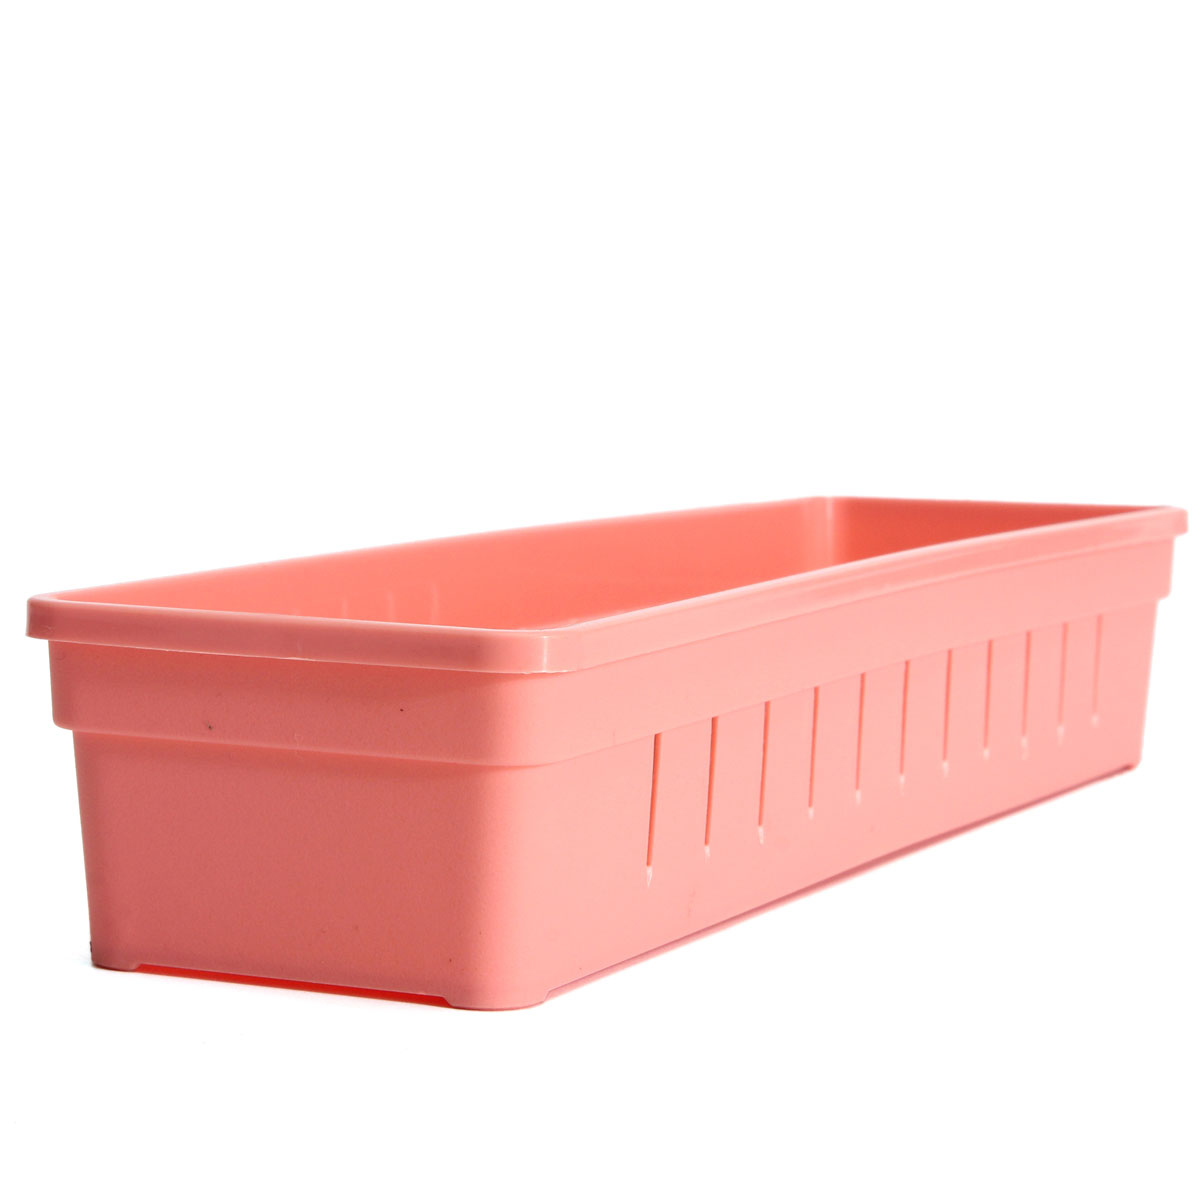 Cutlery Storage Containers Listitdallas